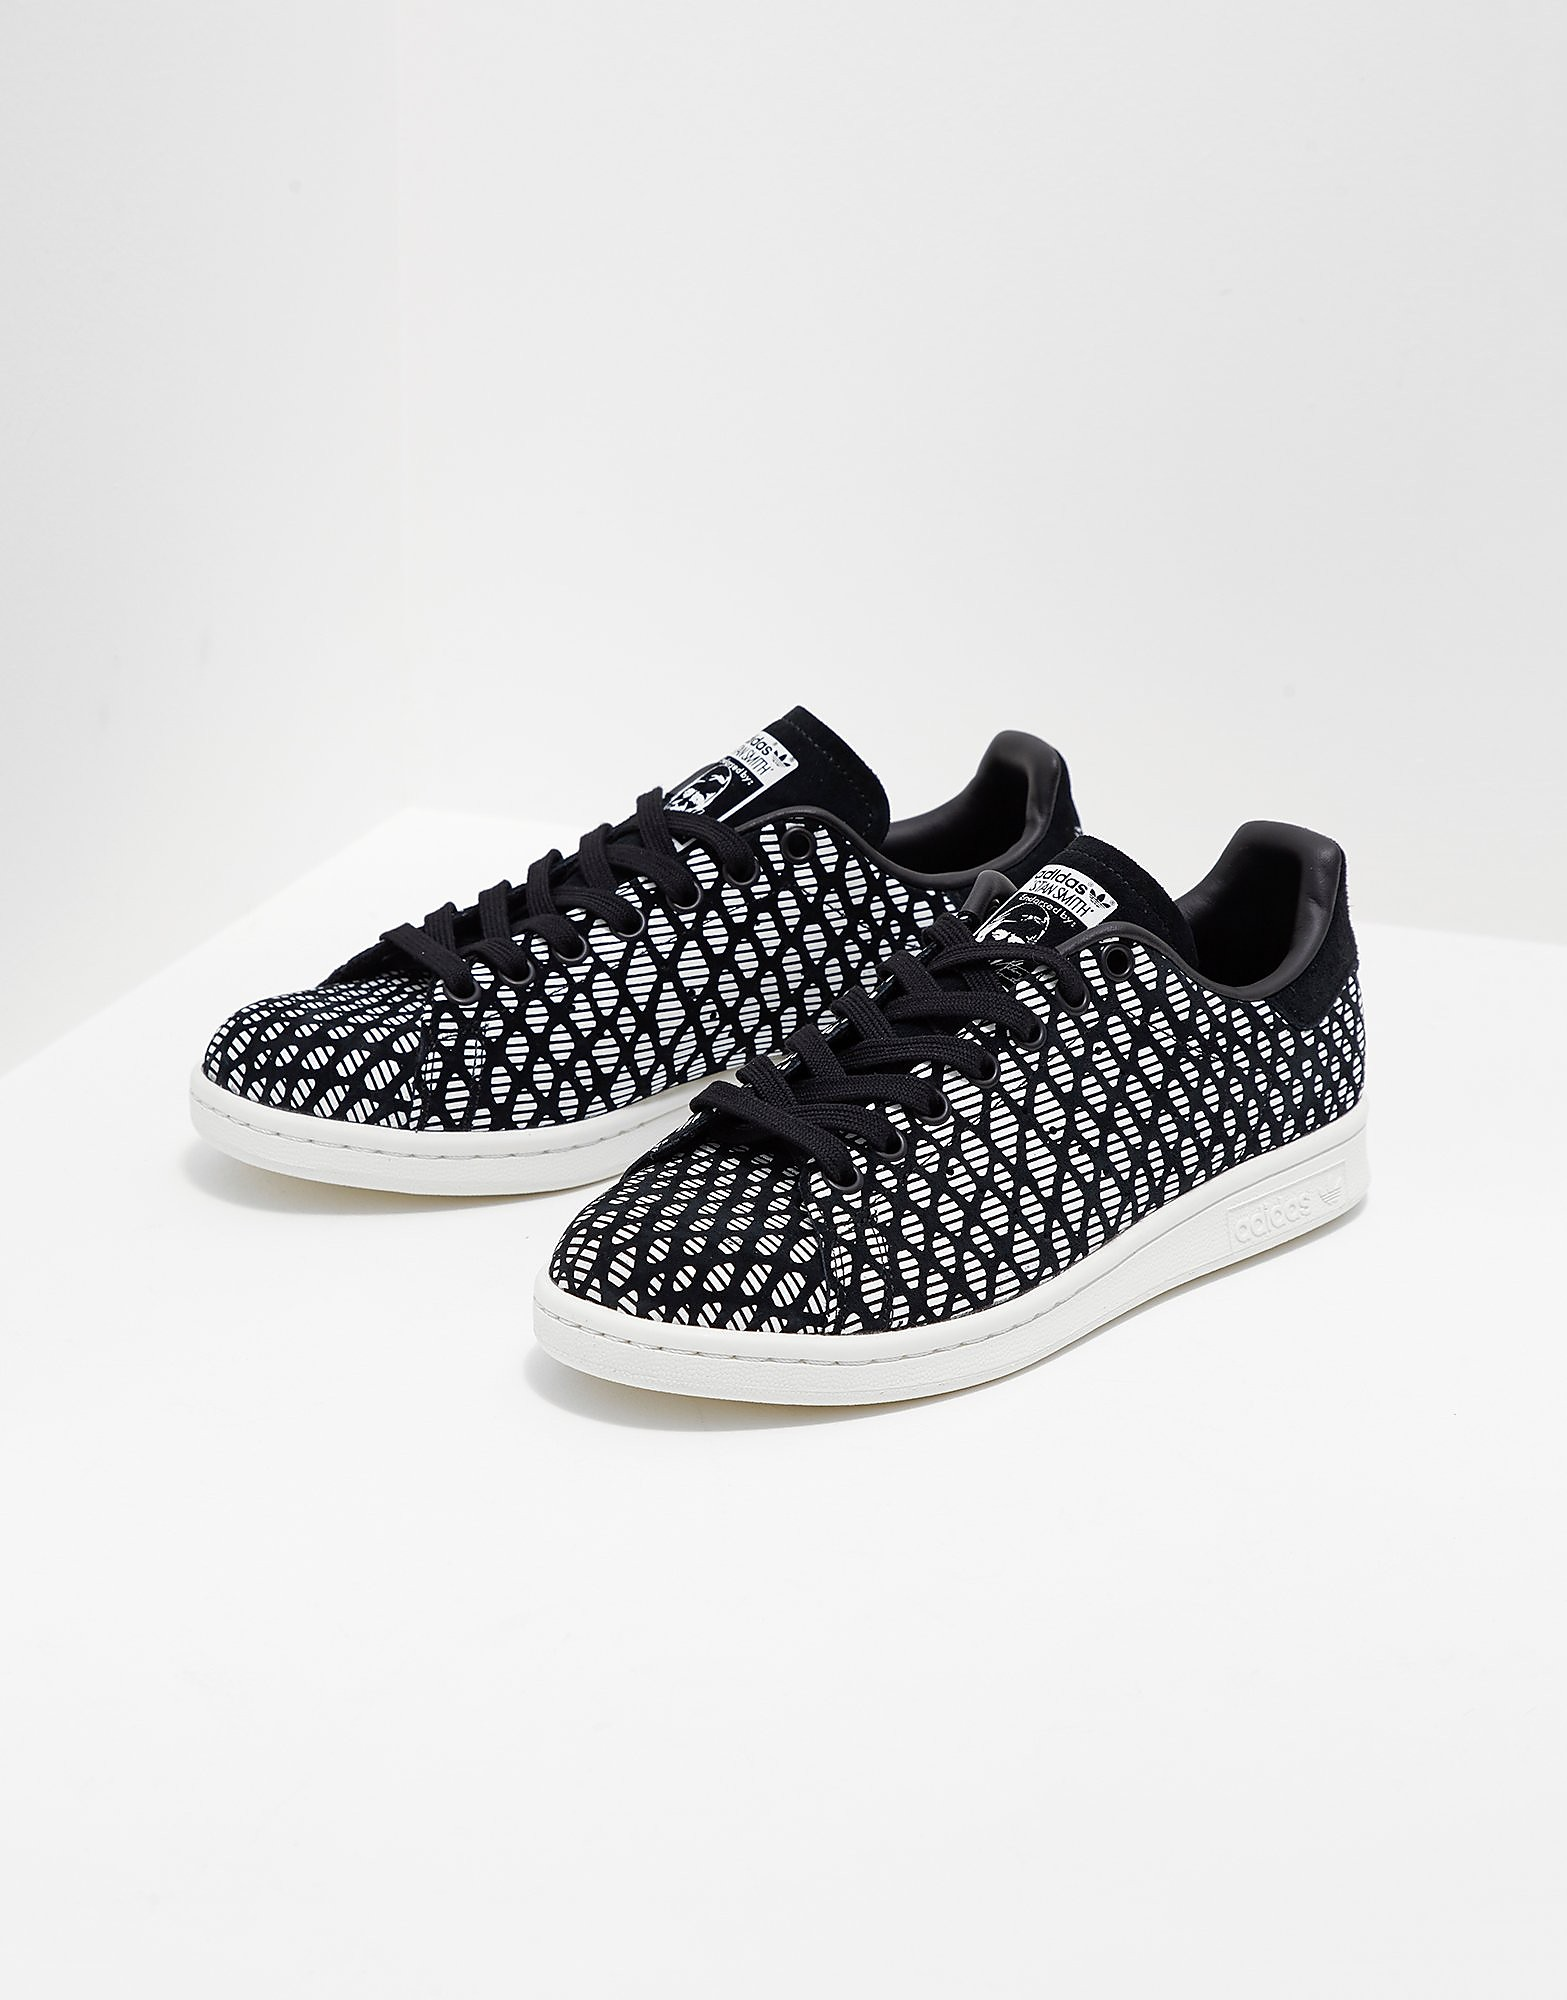 adidas Originals Stan Smith Printed Trainers